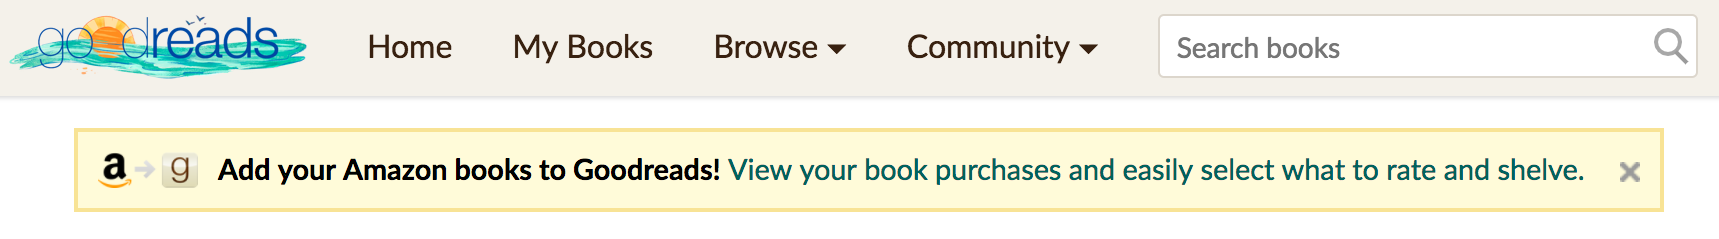 How to add Amazon books to Goodreads? - Ask Dave Taylor